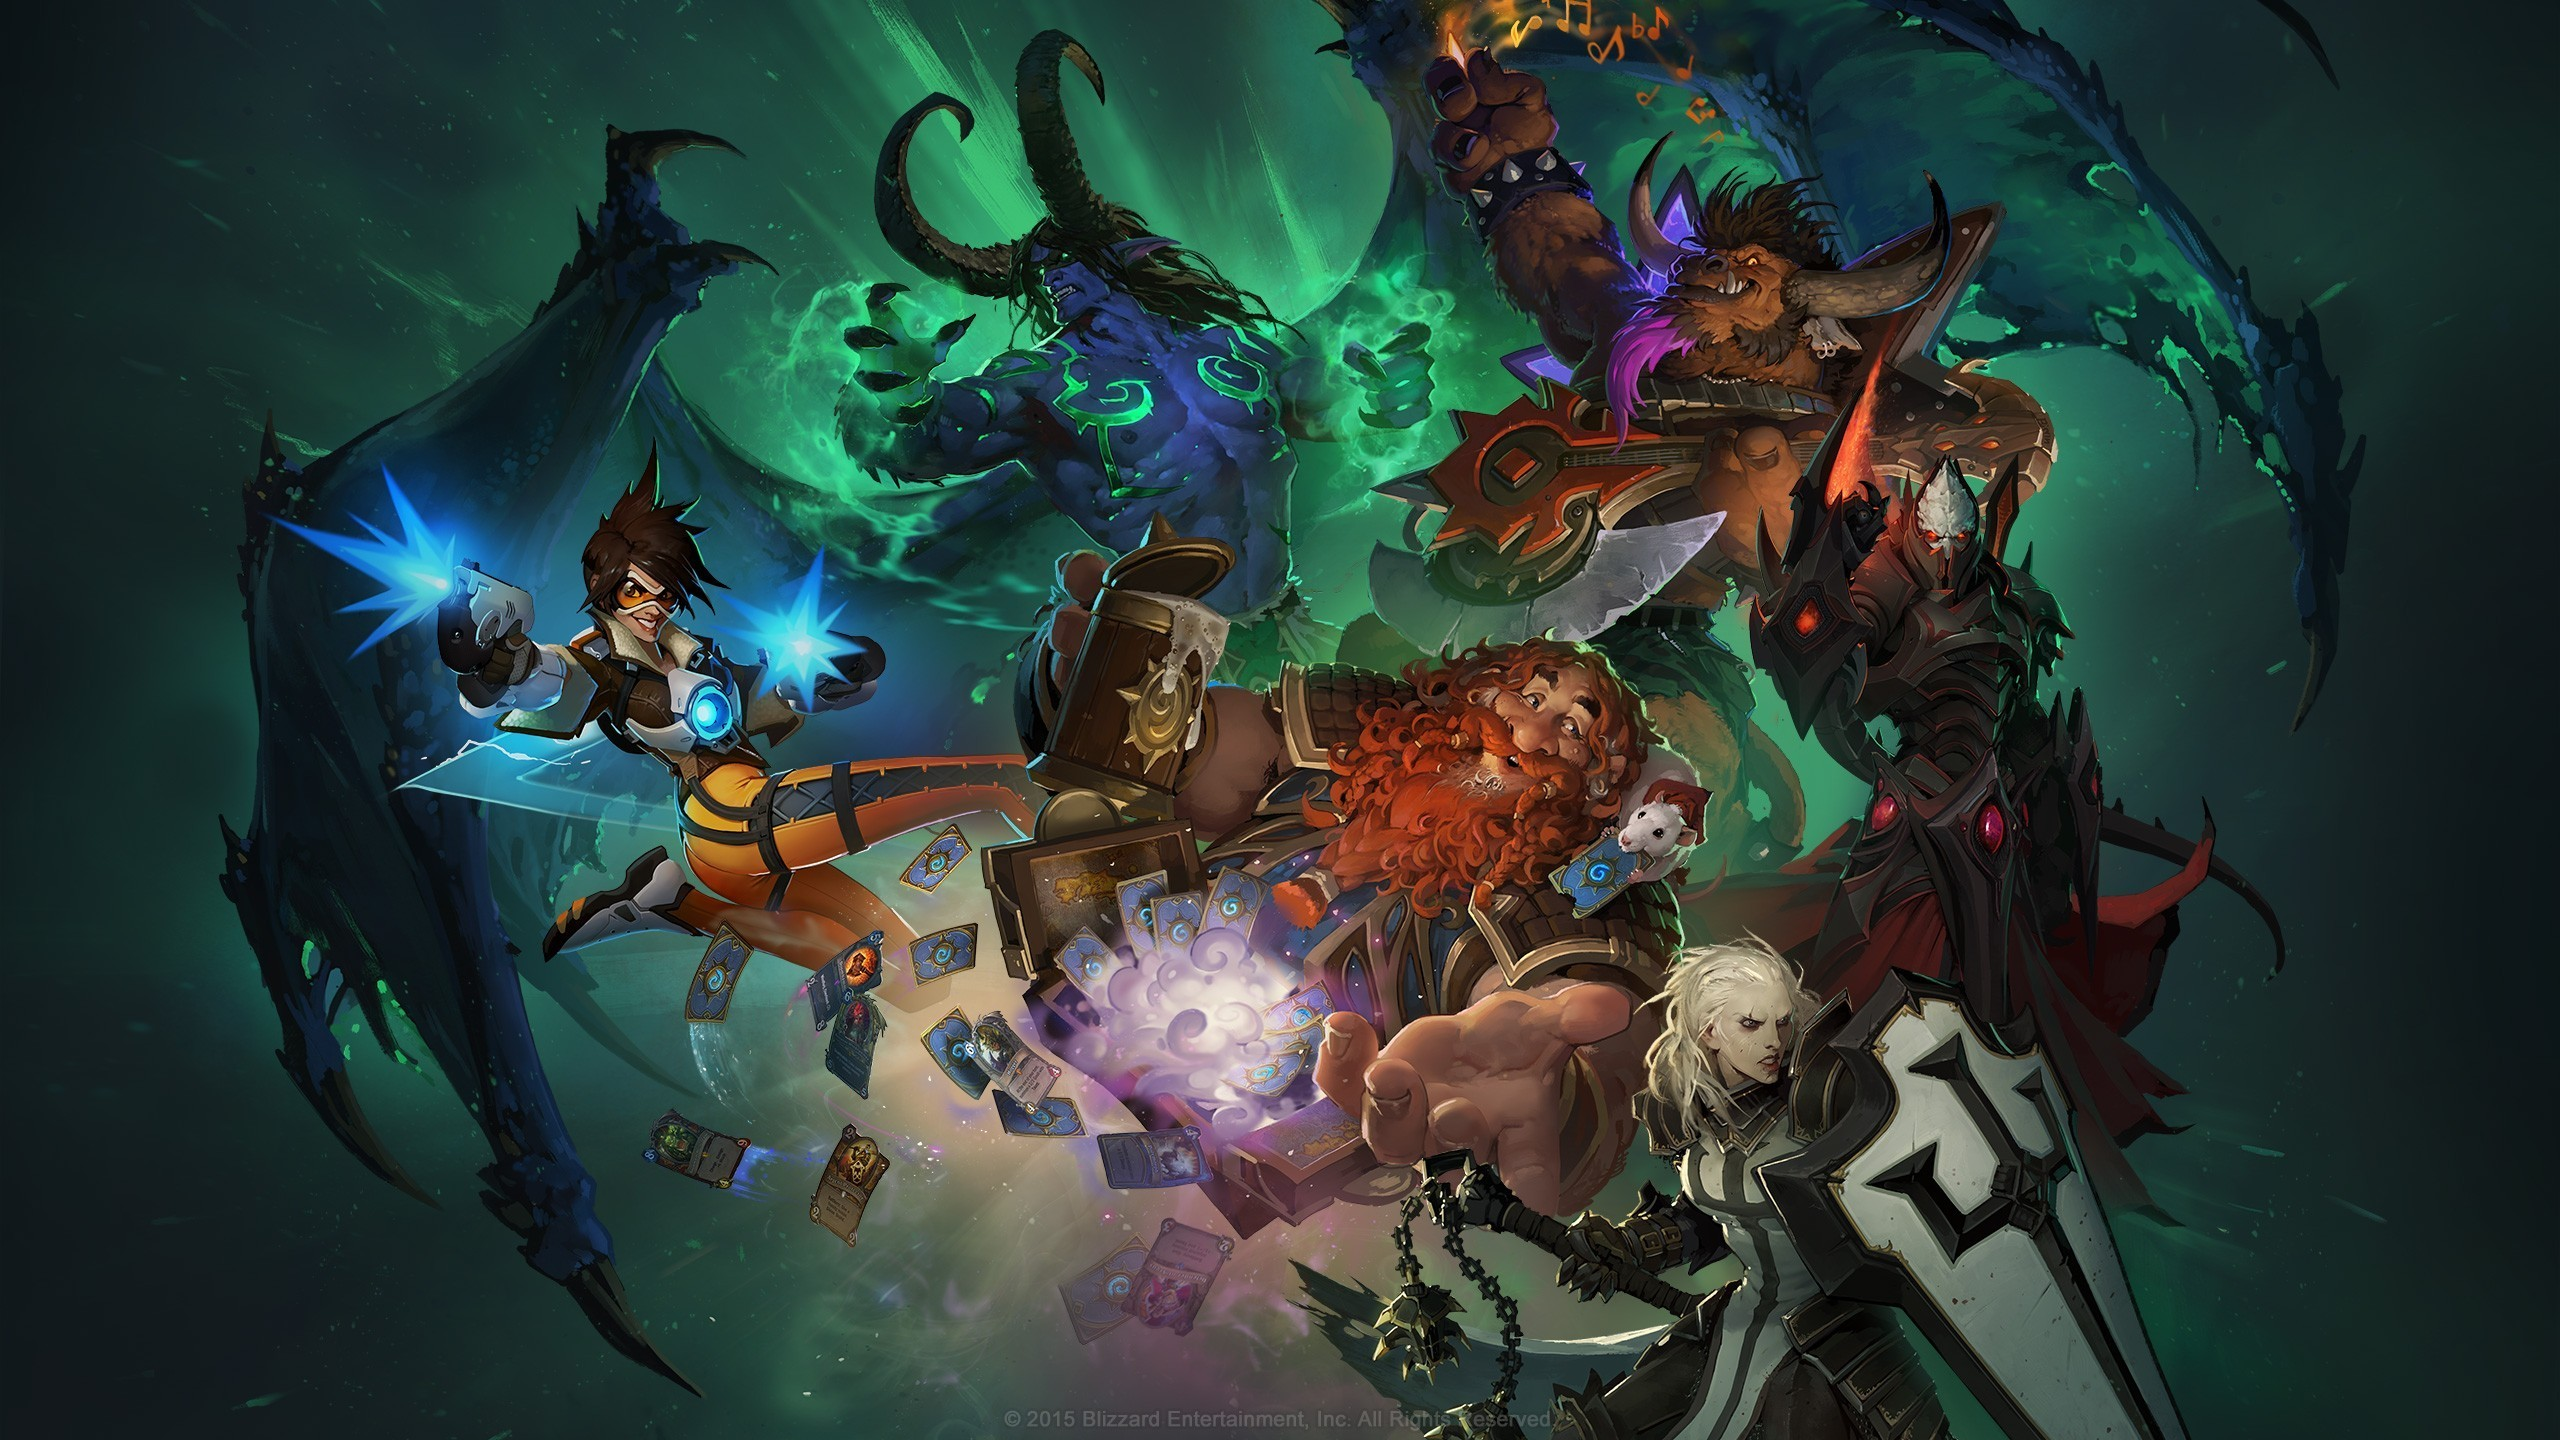 Res: 2560x1440,  Blizzard Entertainment, Illidan, Overwatch, Diablo III, BlizzCon,  Hearthstone Wallpaper HD